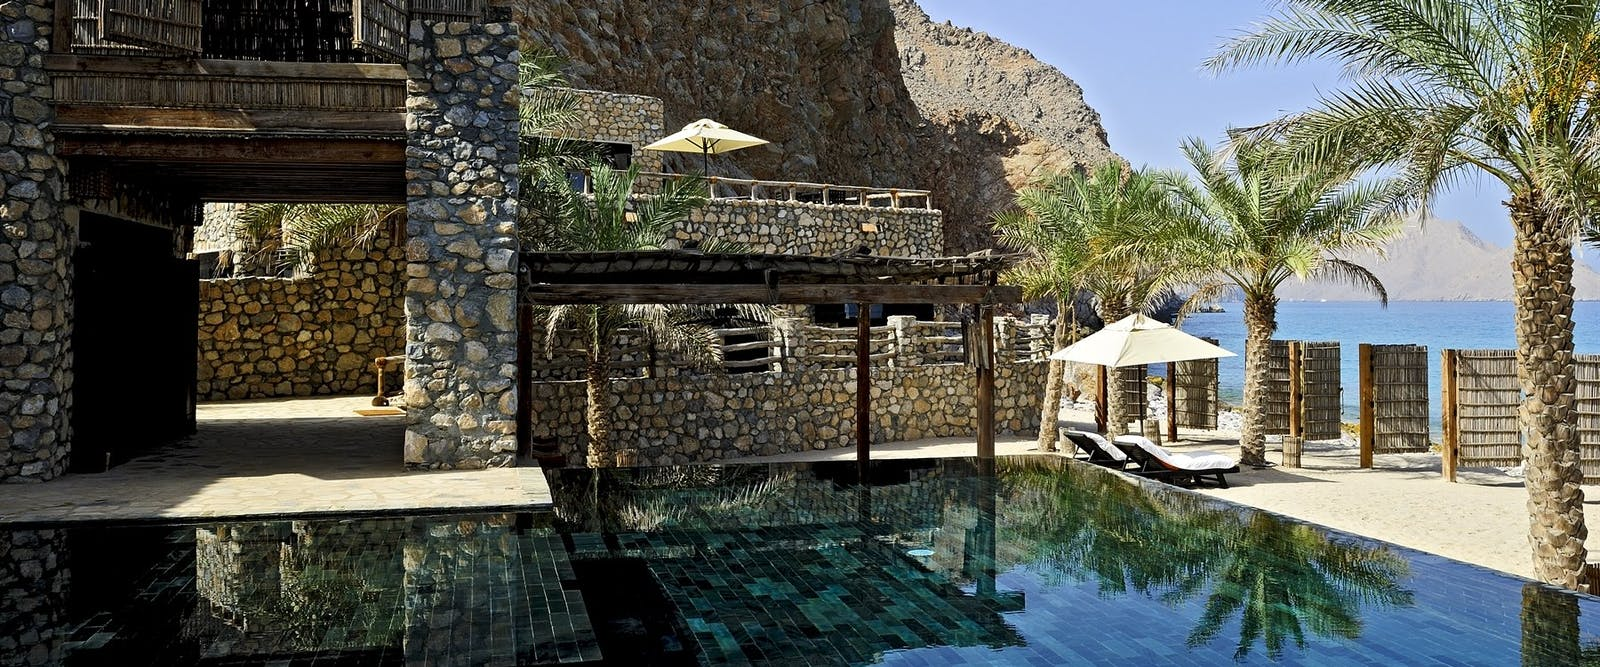 Pool Terrace at Private Retreats and Reserve at Six Senses Zighy Bay